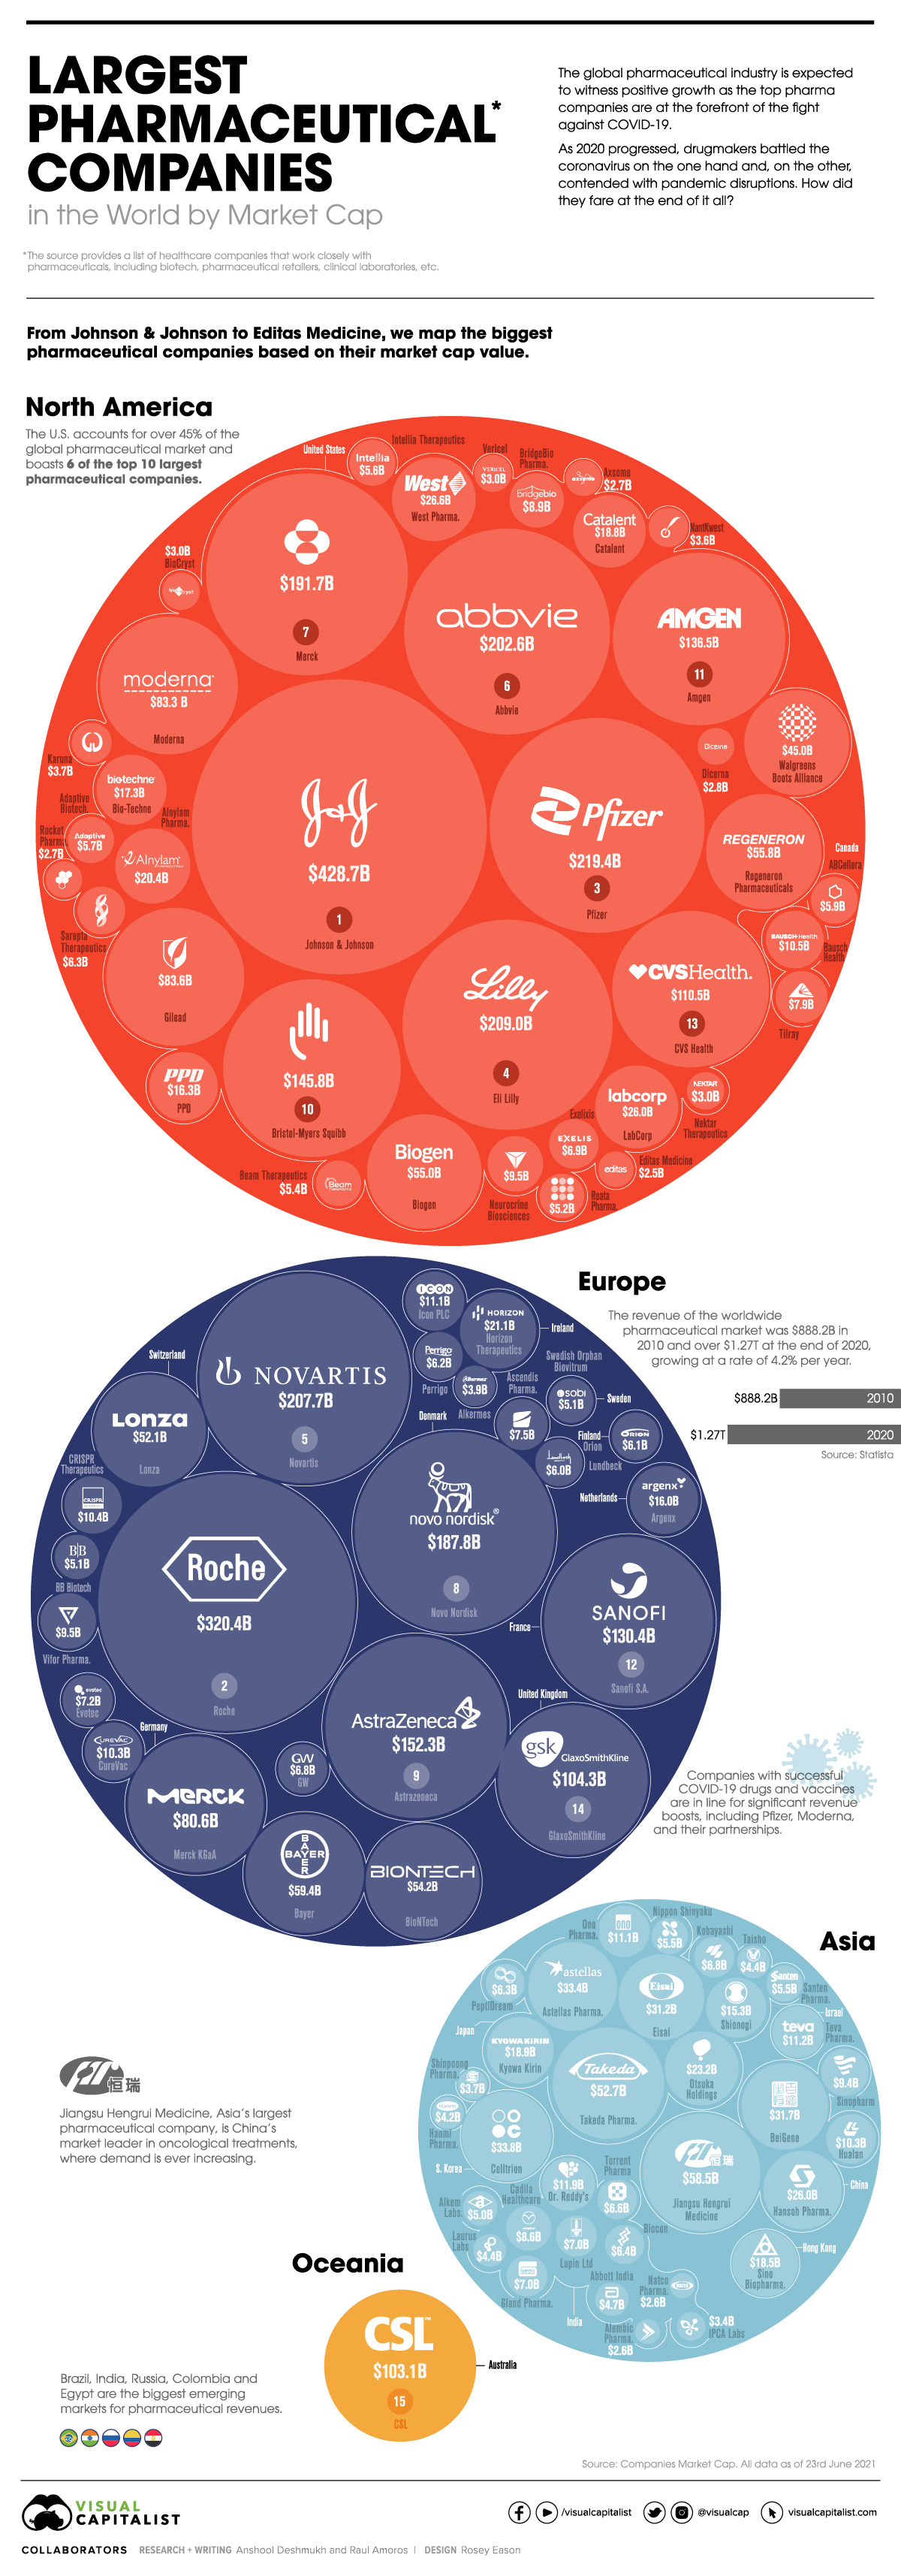 Bubble map of the largest pharmaceutical companies in the world